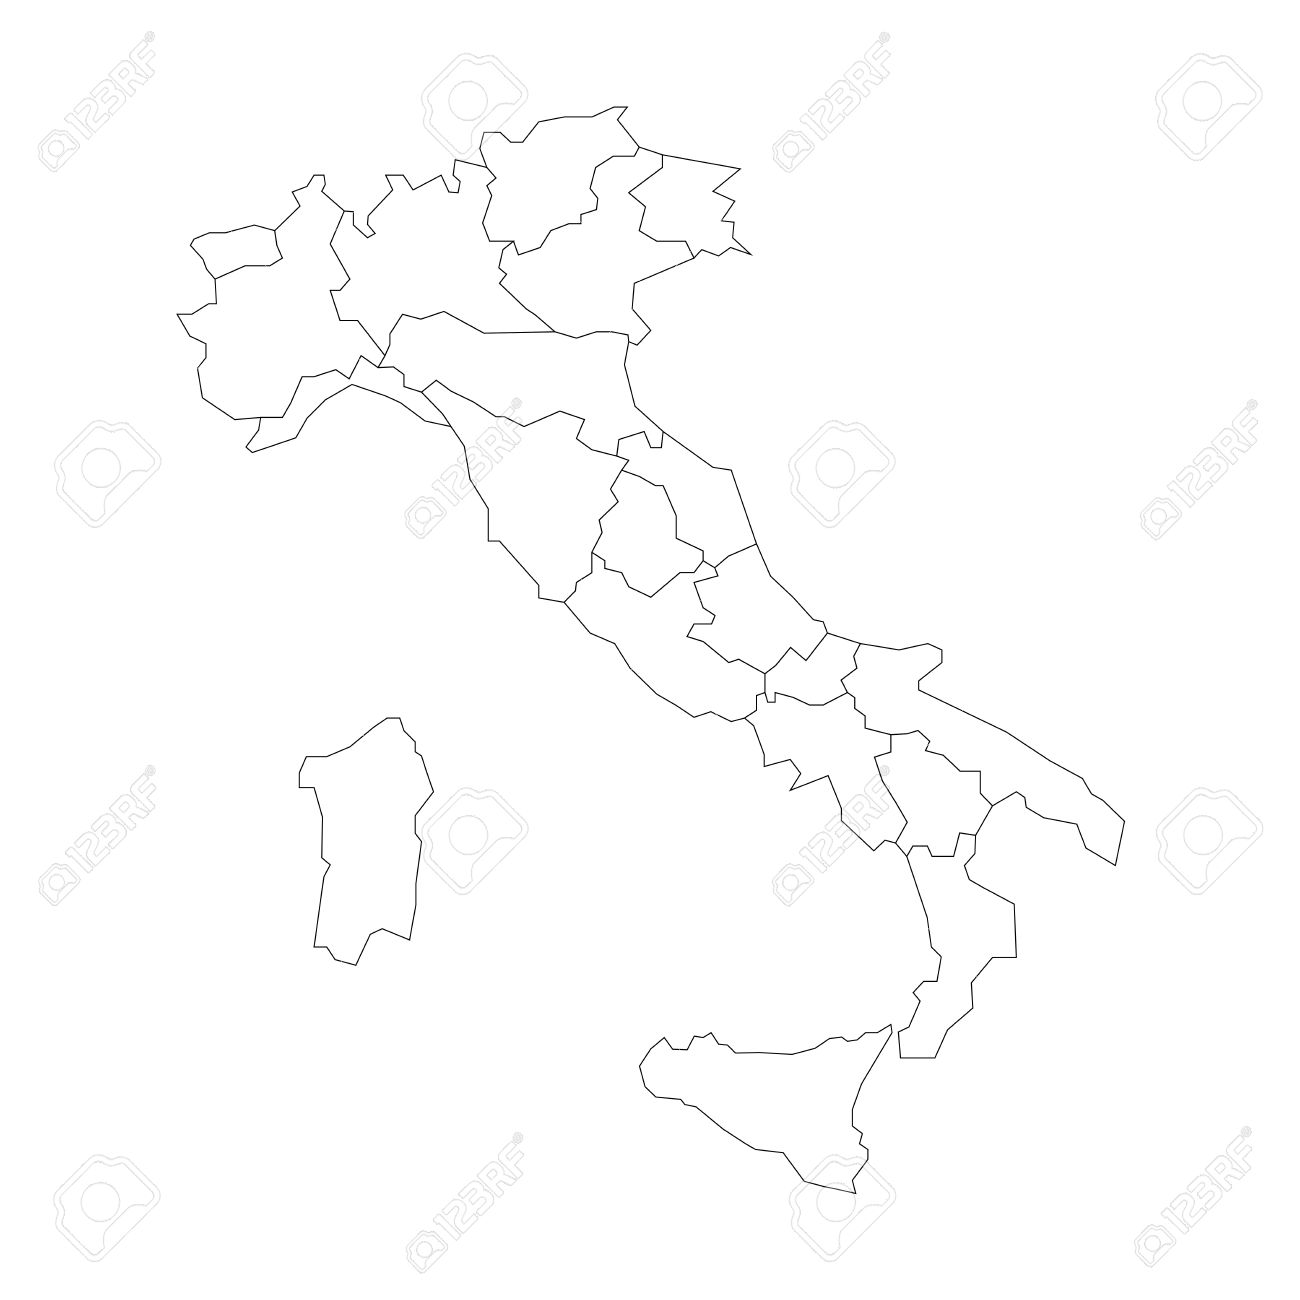 Black And White Map Of Italy.Map Of Italy Divided Into 20 Administrative Regions White Land